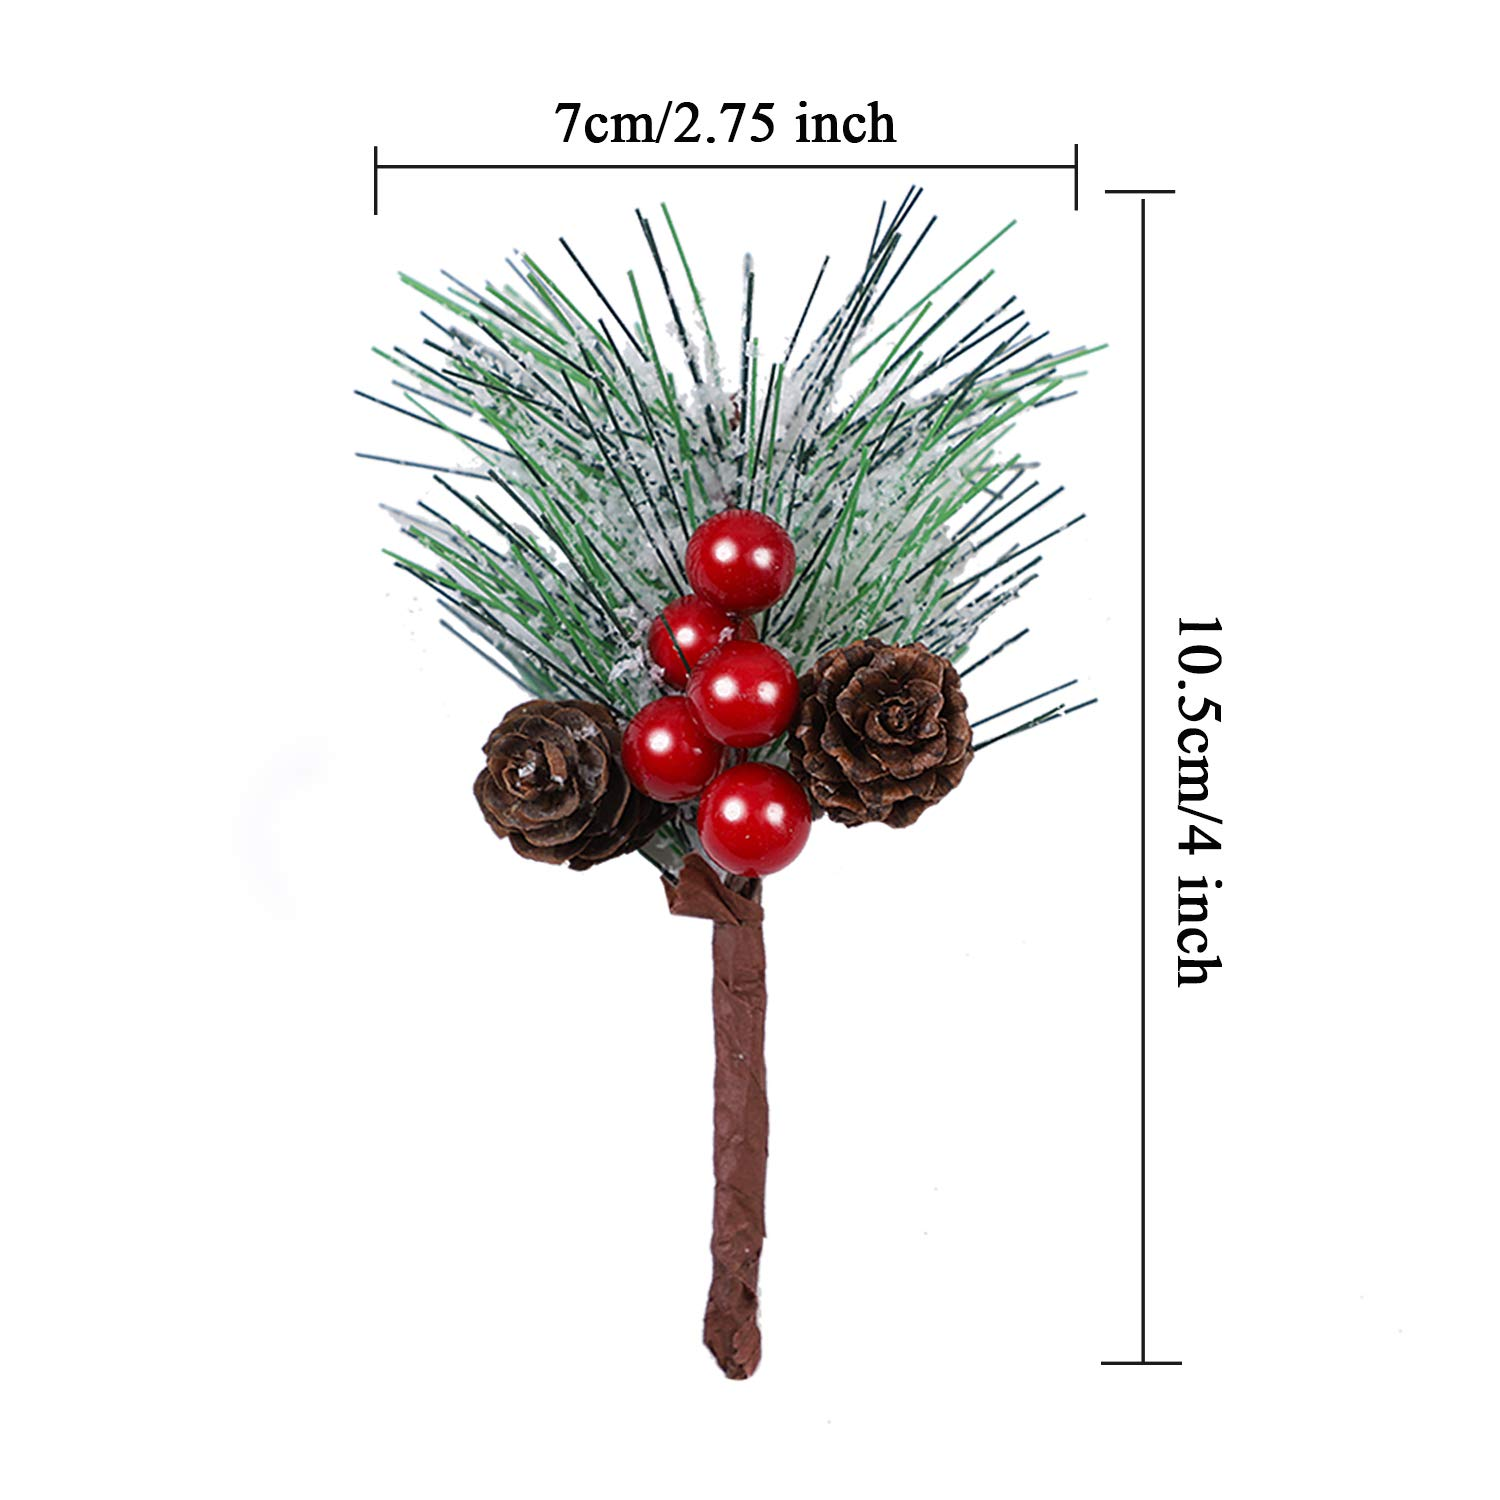 Color C URATOT 24 Pieces Artificial Pine Picks with Bell Mini Artificial Pine Tree Christmas Pine Branches for Christmas Party Flower Arrangements Wreaths and Holiday Decorations